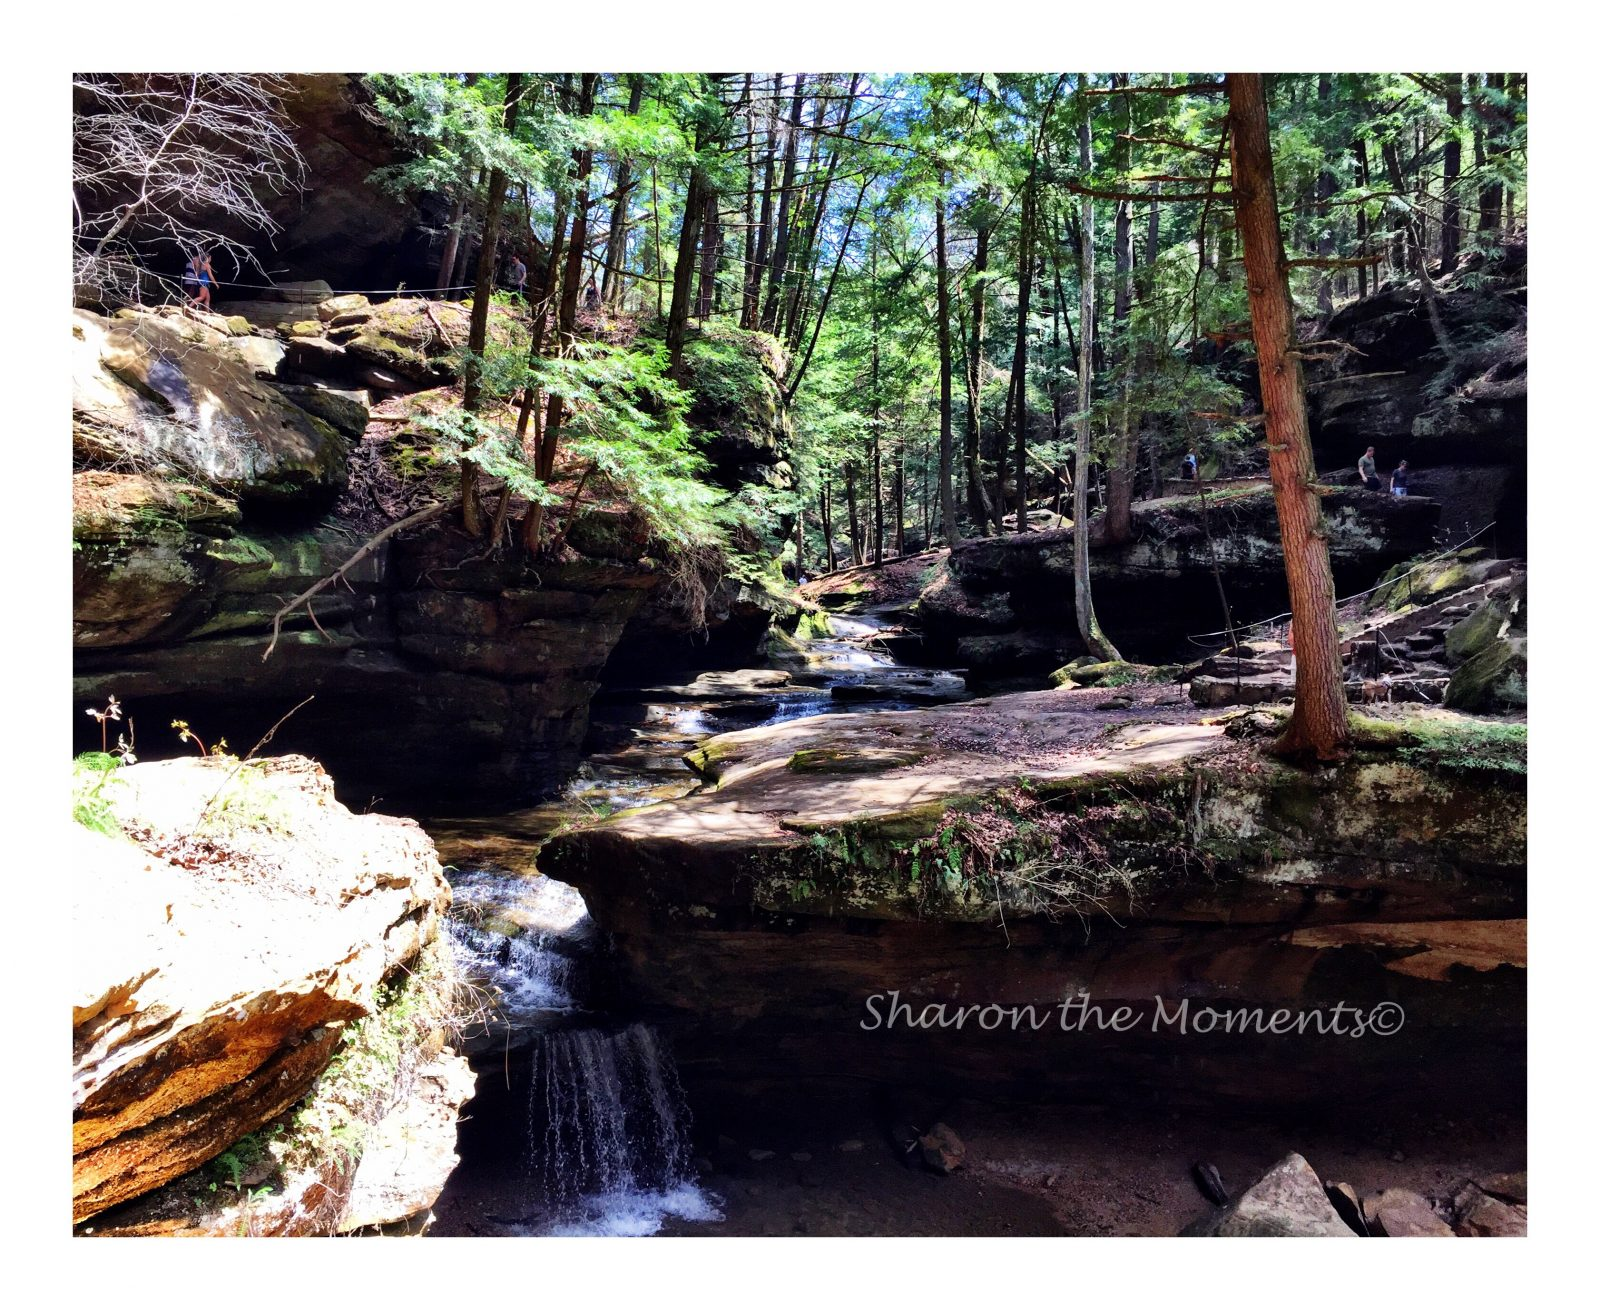 Old Man's Cave in Hocking Hills State Park | Sharon the Moments